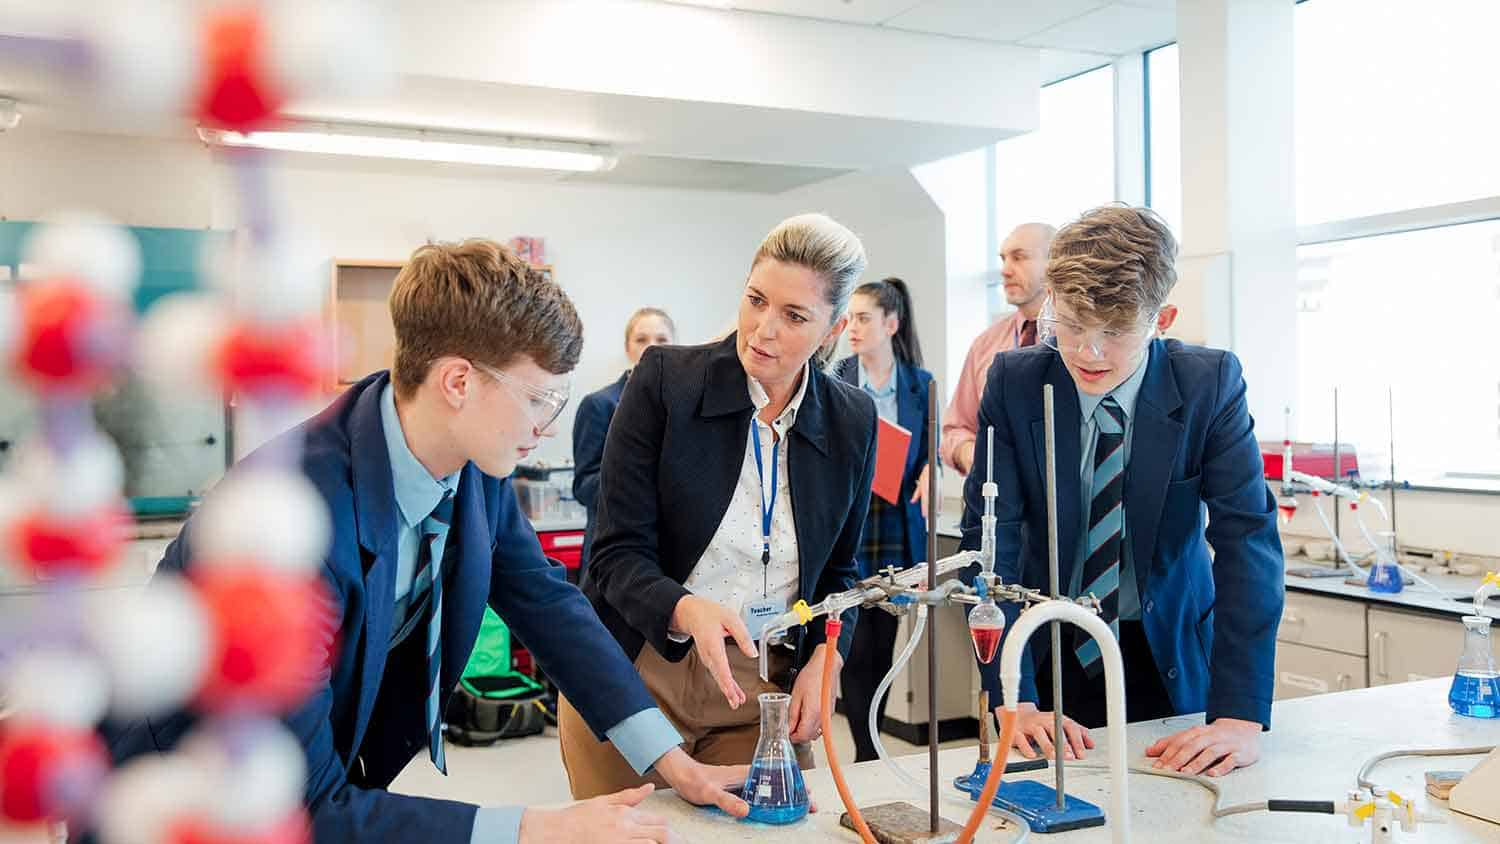 Two students in a science lesson being taught by a teacher